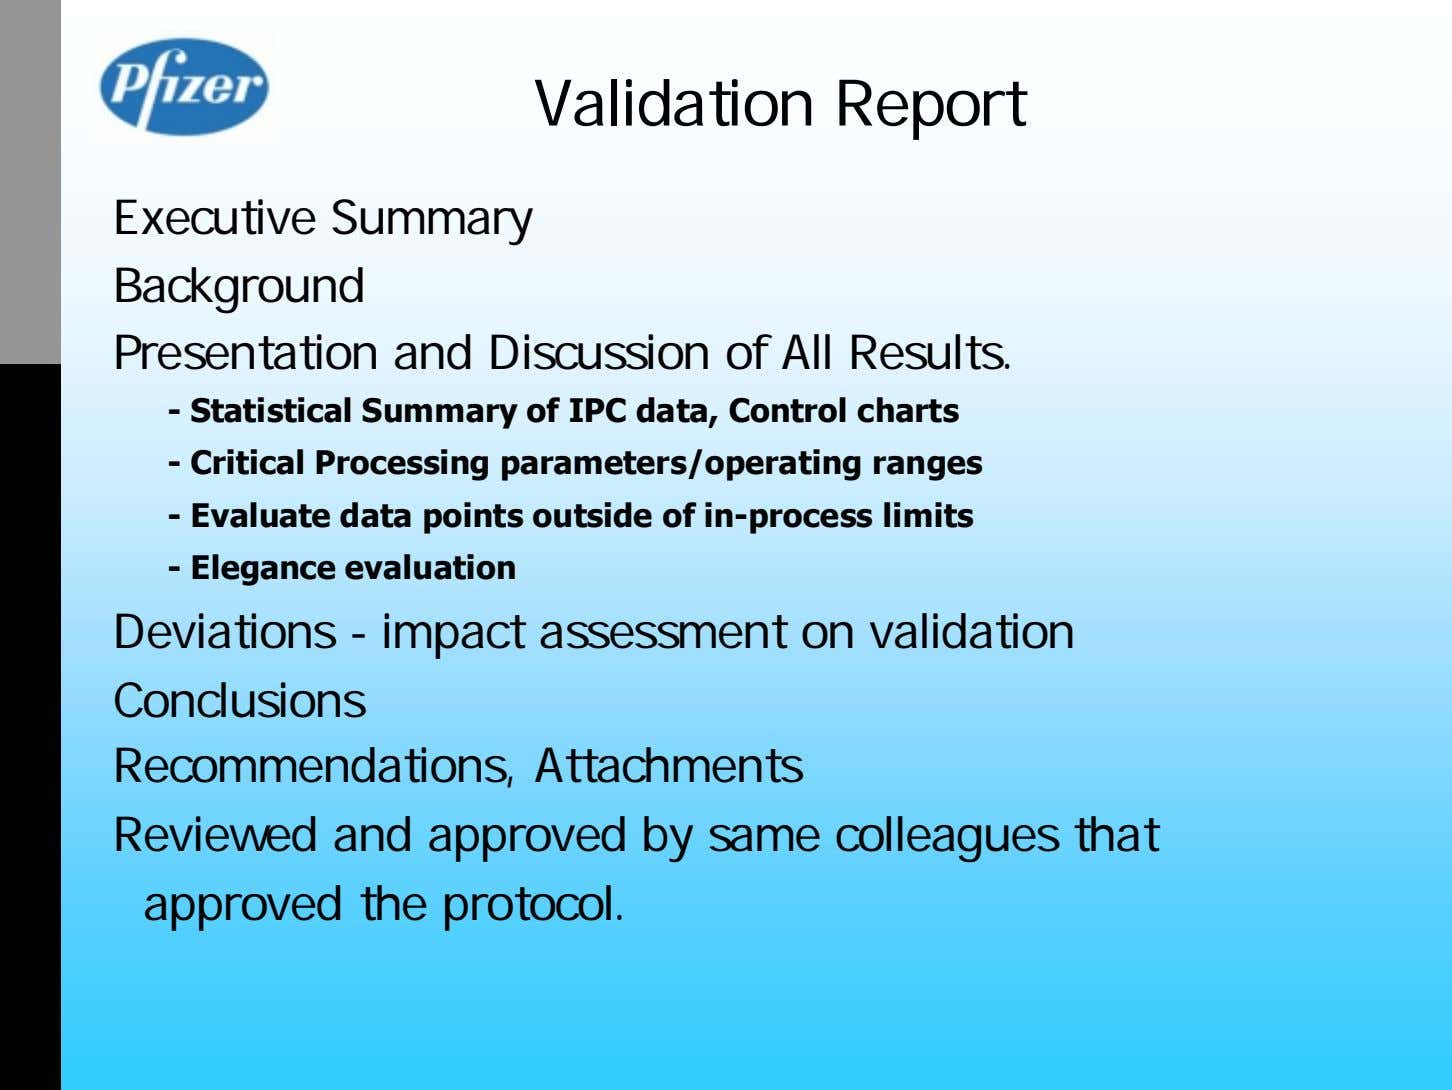 Validation Report Executive Summary Background Presentation and Discussion of All Results. - Statistical Summary of